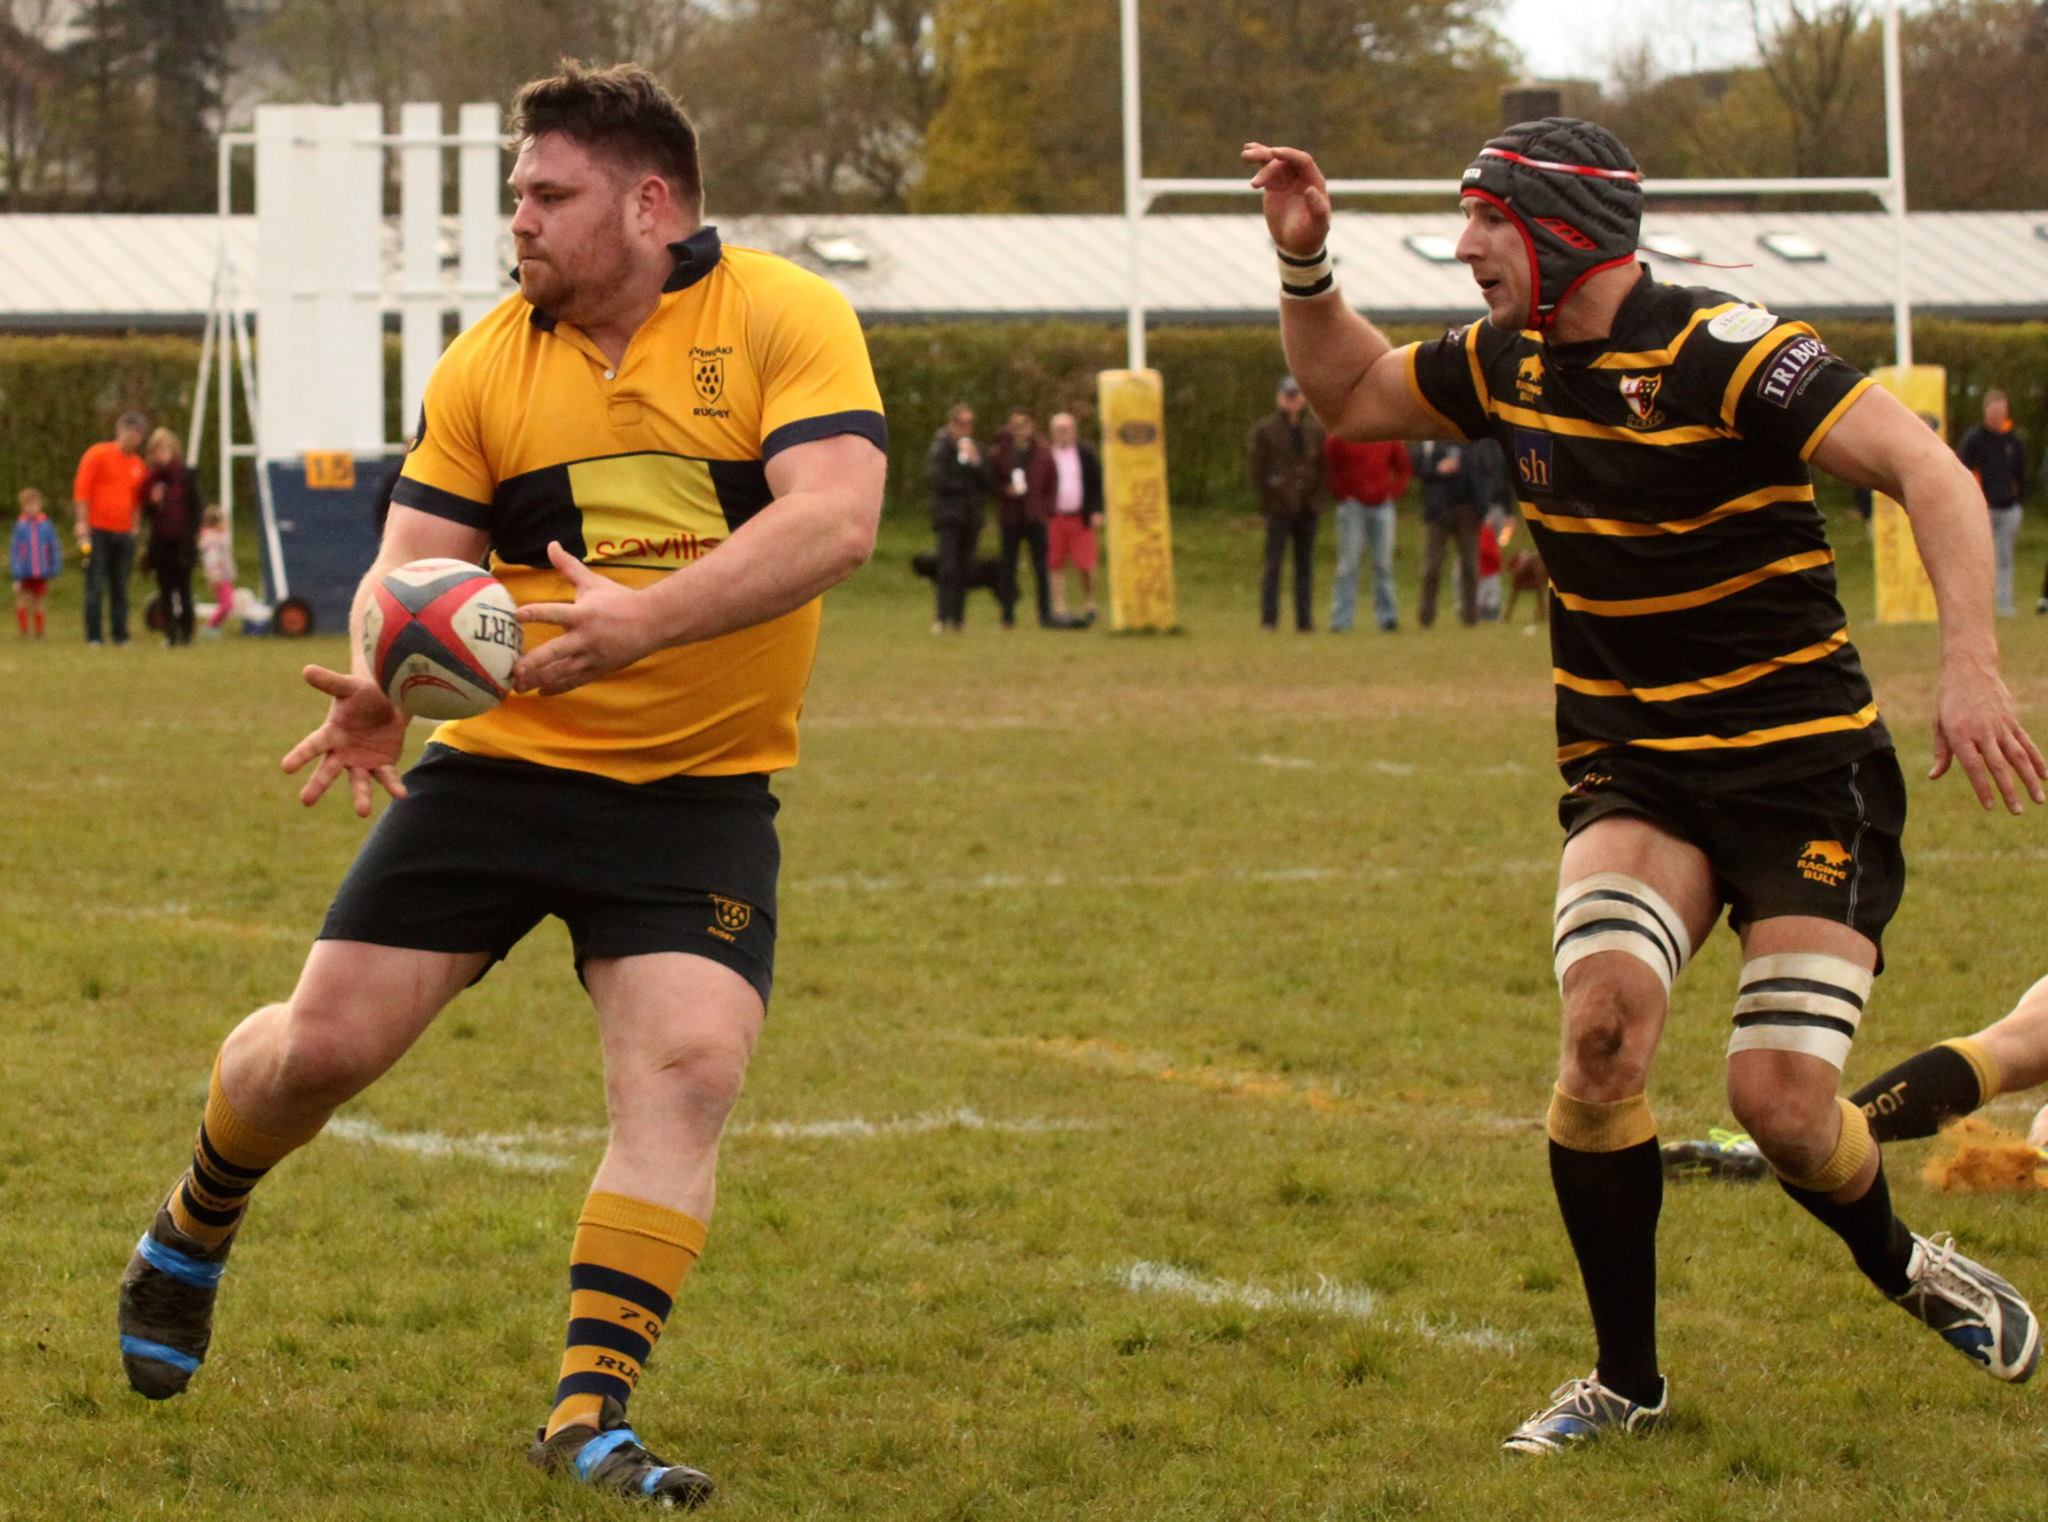 Power gets a pass away during Oaks play off match against London Cornish in 2016. Photo Credit: Hils Everitt